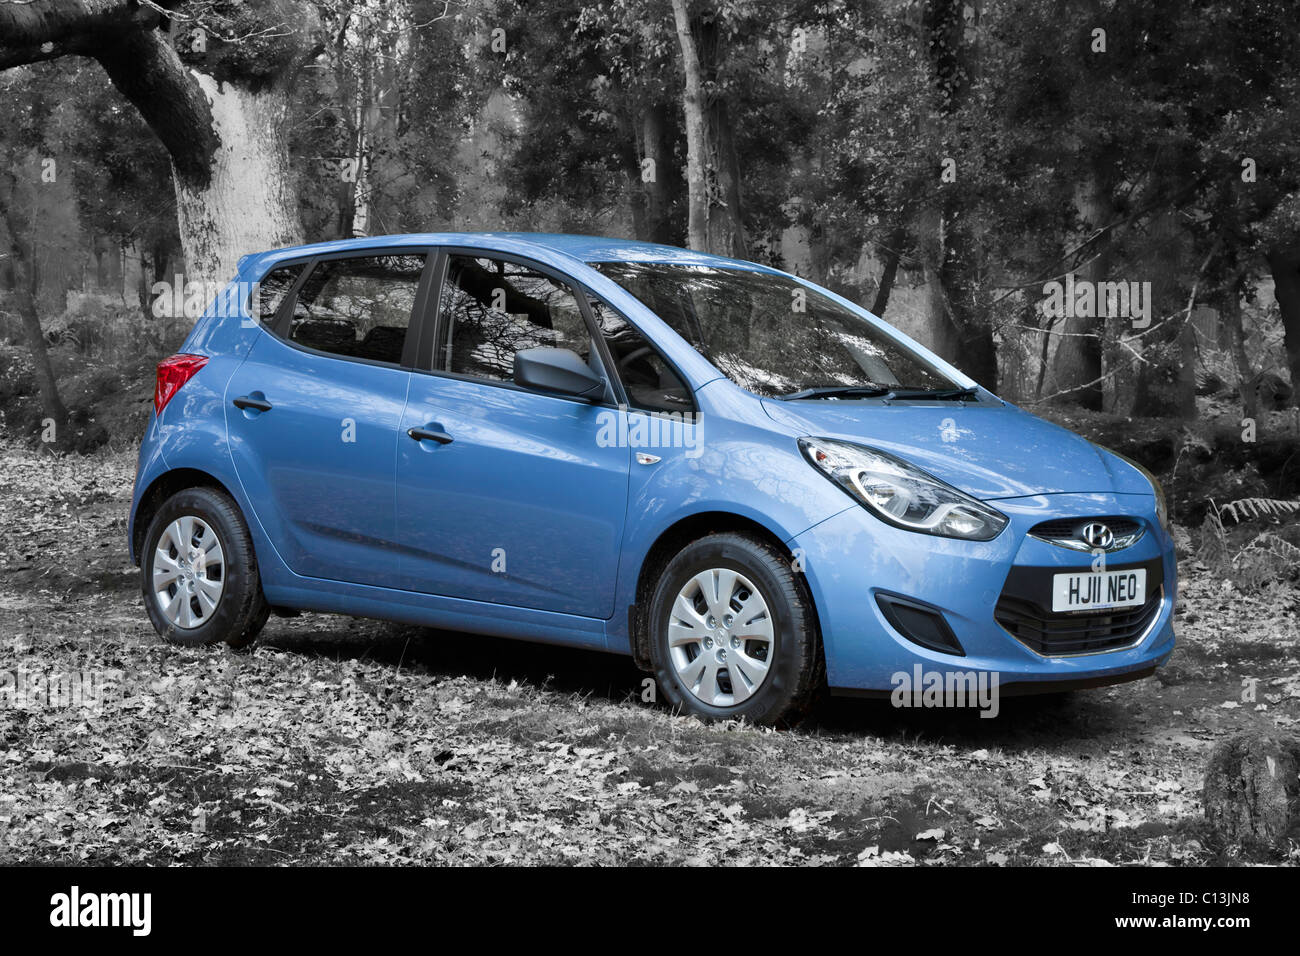 New Hyundai iX20 11 reg blue hatchback estate compact MPV car on b/w background - Stock Image